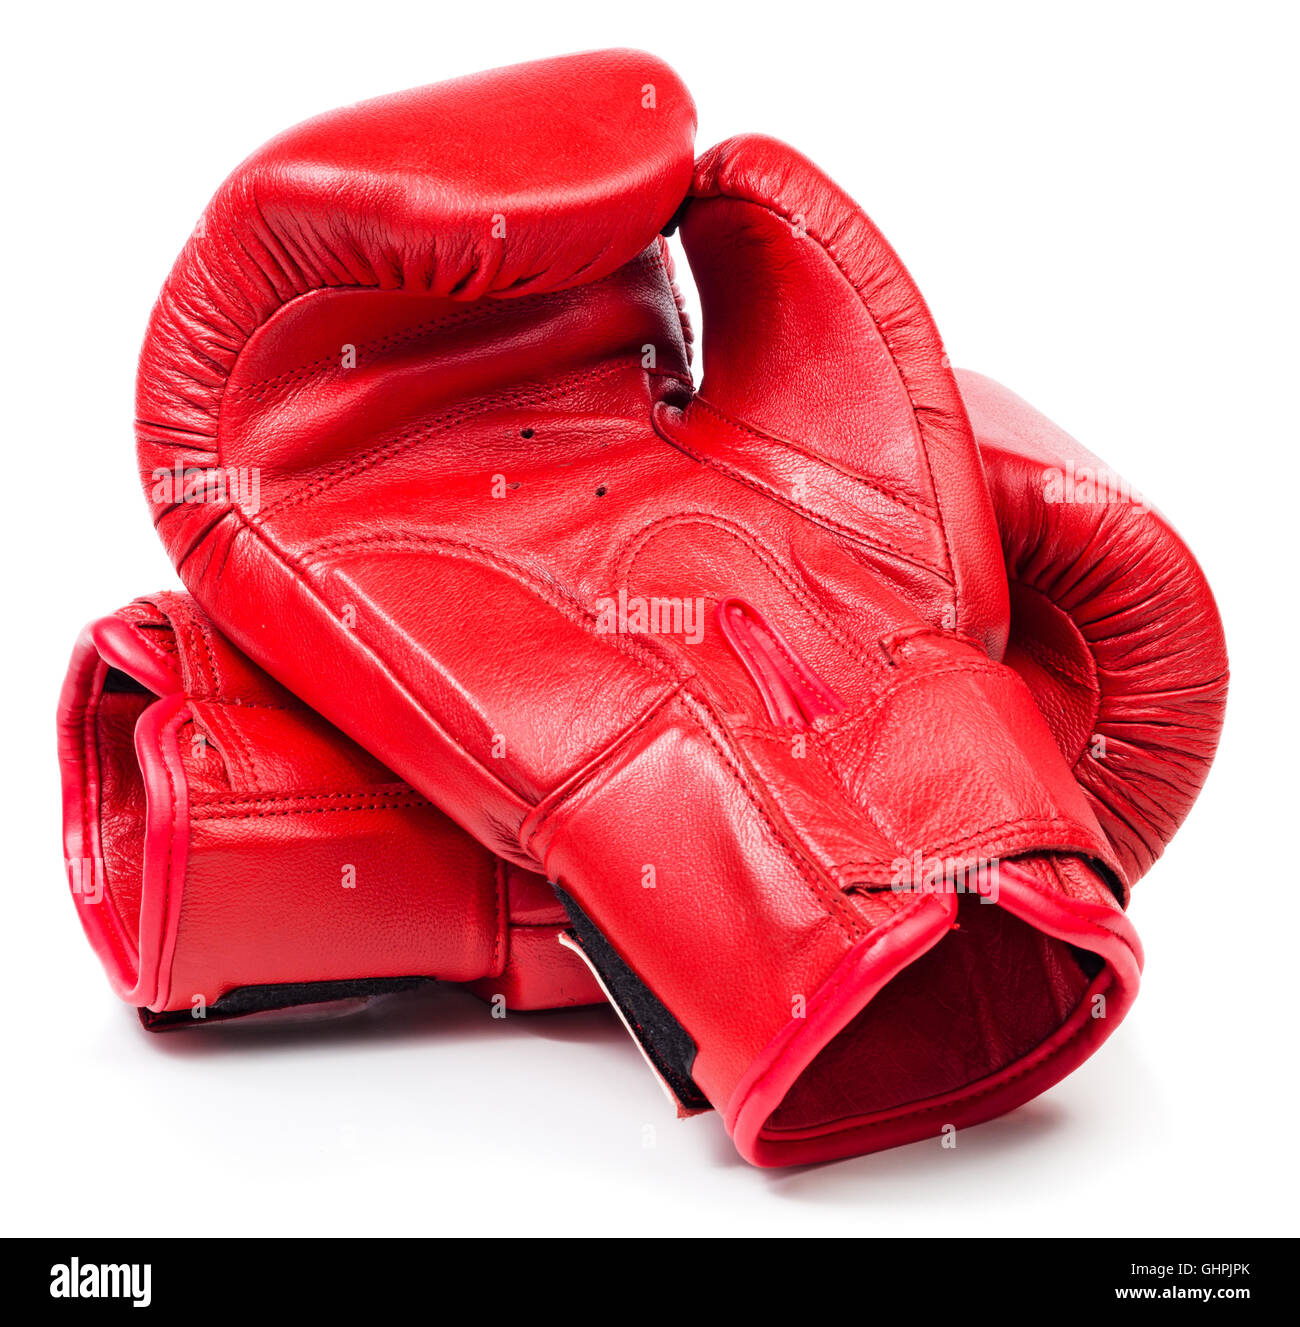 Pair of red leather boxing gloves isolated on white background - Stock Image